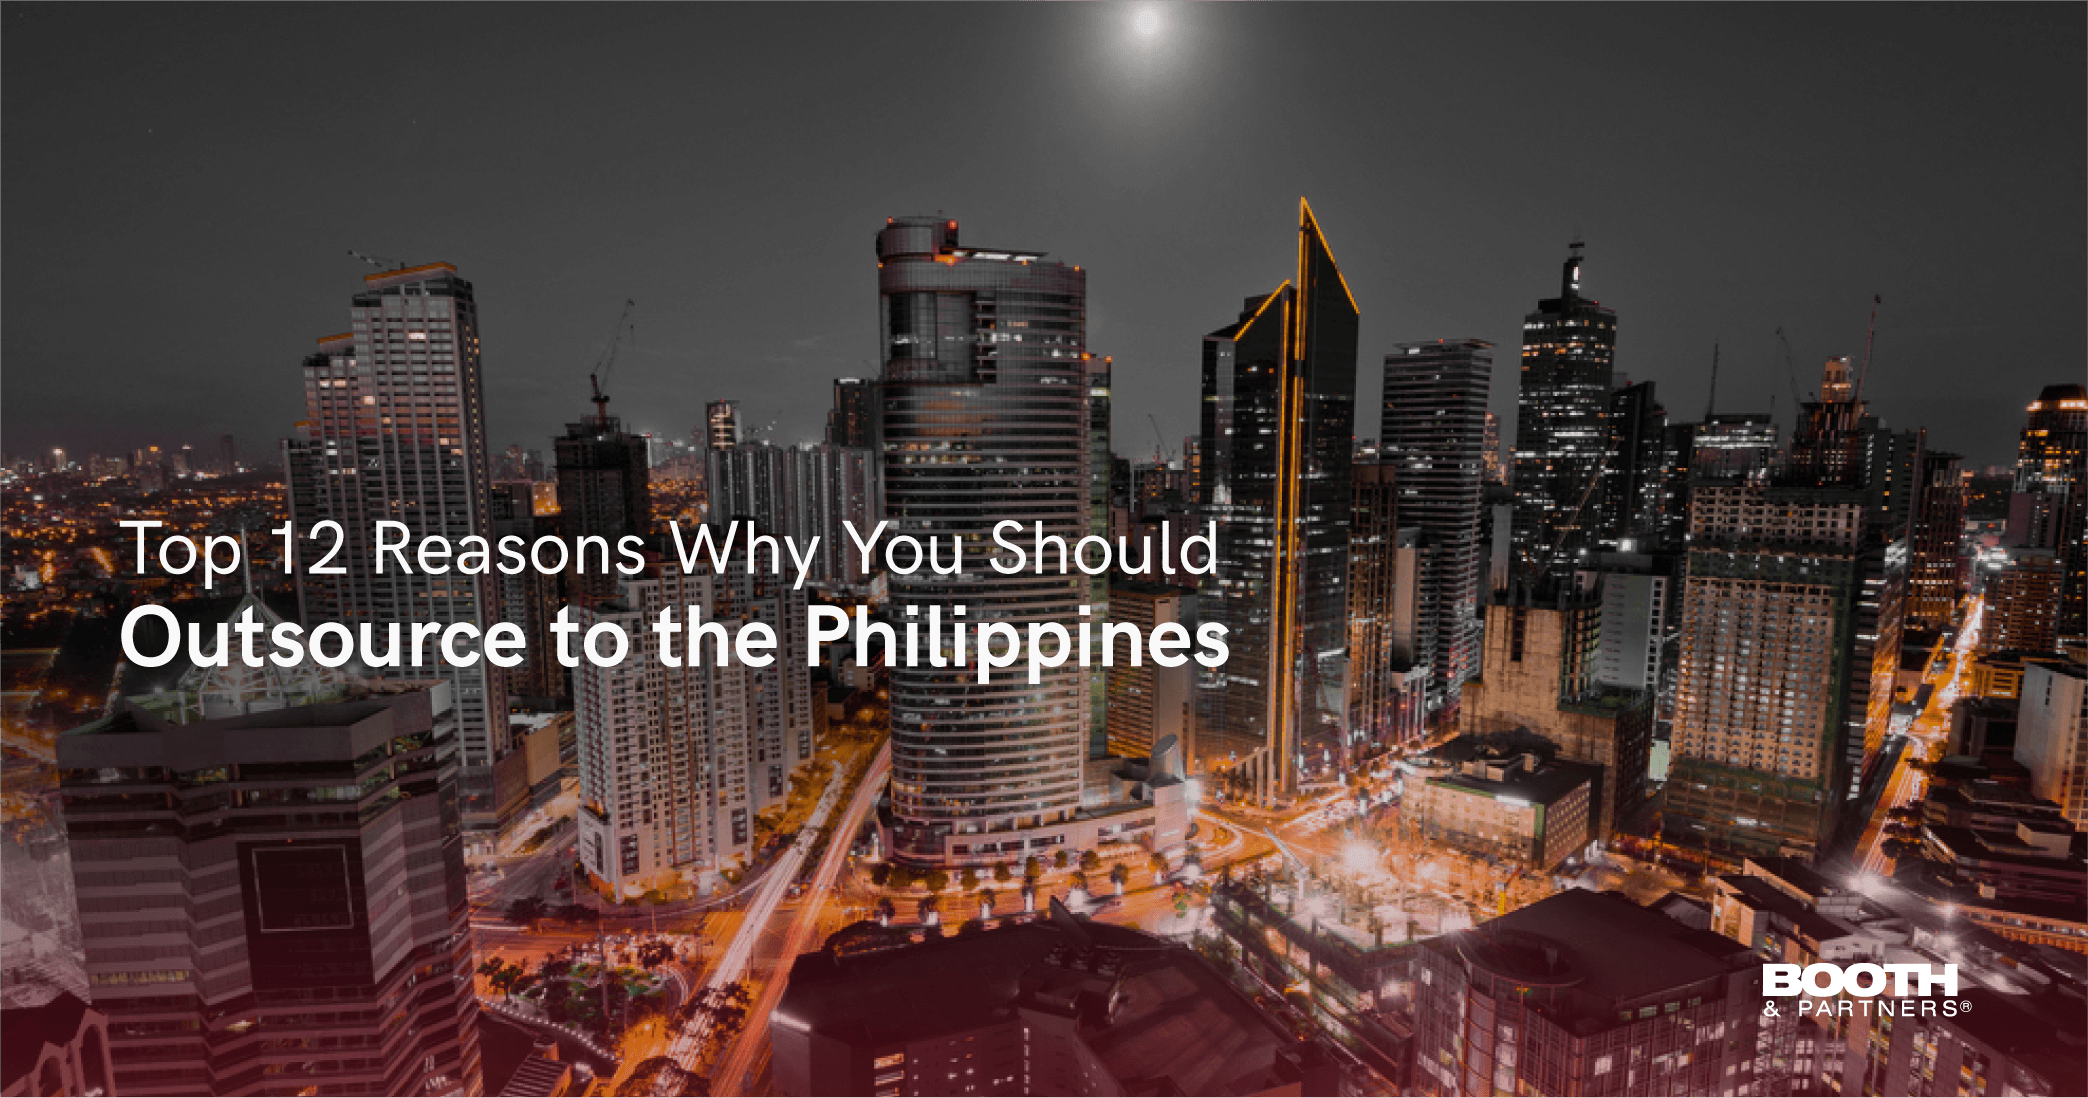 Top 12 Reasons Why You Should Outsource to the Philippines